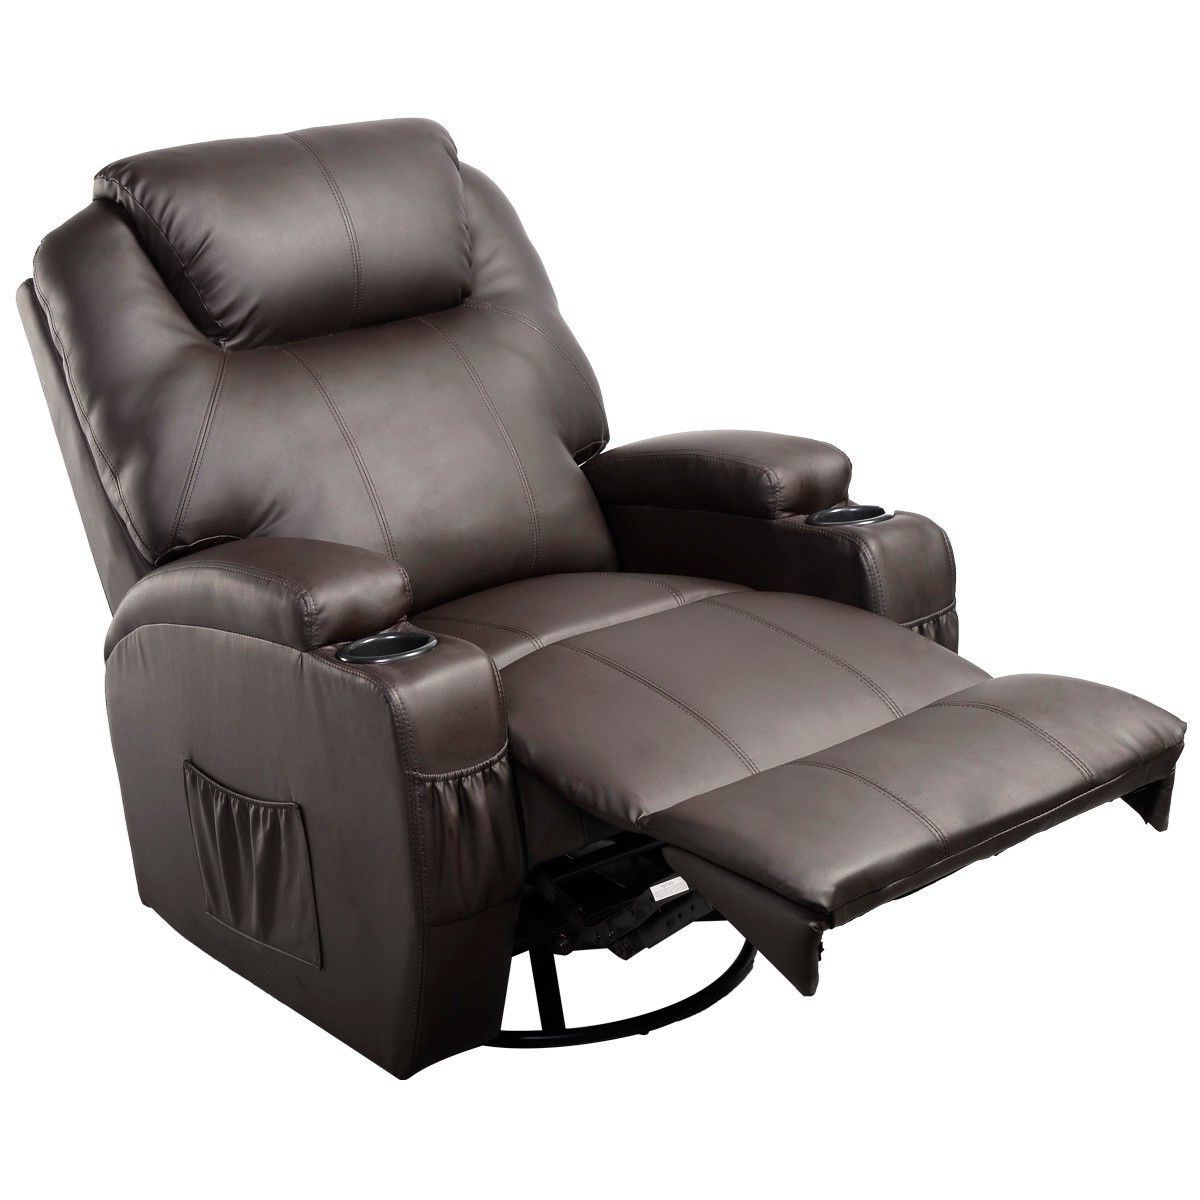 Most Recent Awesome Recliner Sofa Chair 96 For Sofa Room Ideas With Recliner Regarding Recliner Sofa Chairs (View 2 of 20)